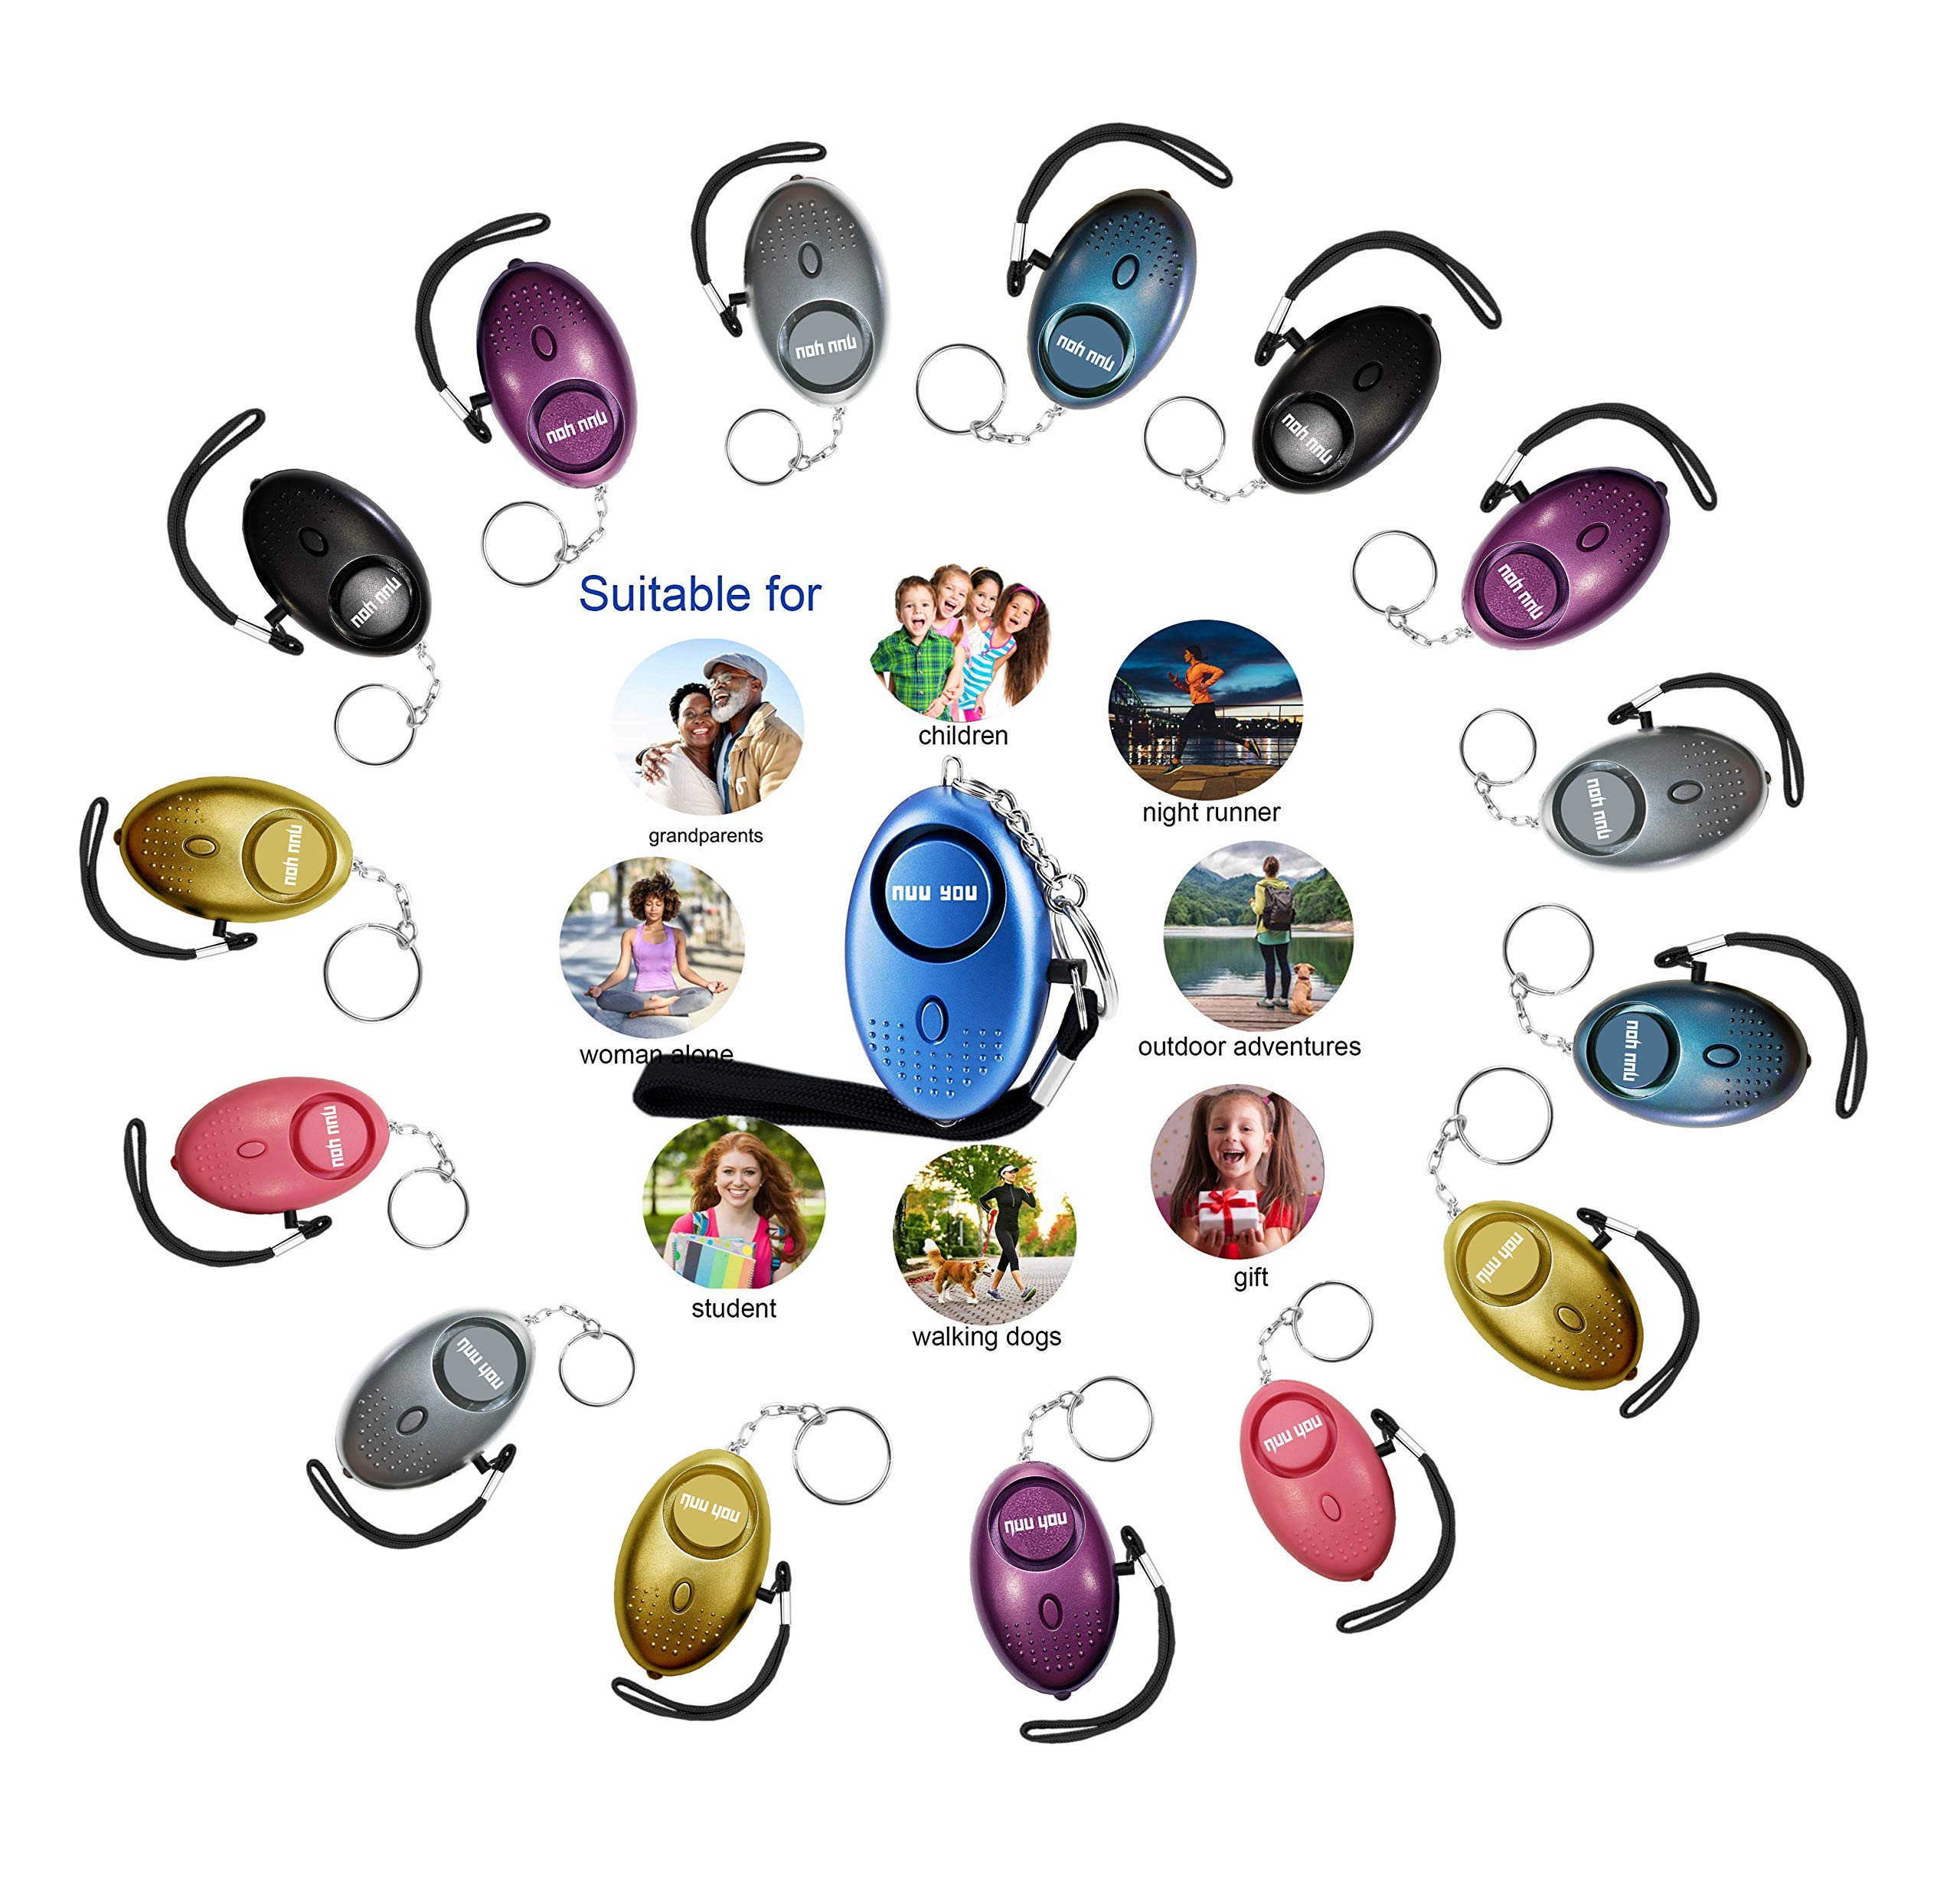 Personal Alarms for Woman Siren 140 DB with LED Light (4 Pack) Small Safety Sound Alarm Keychain for Personal Alarm Women/Kids/Girls/Elderly Self Defense Device Policeman Recommend (Multicolor 15PACK)